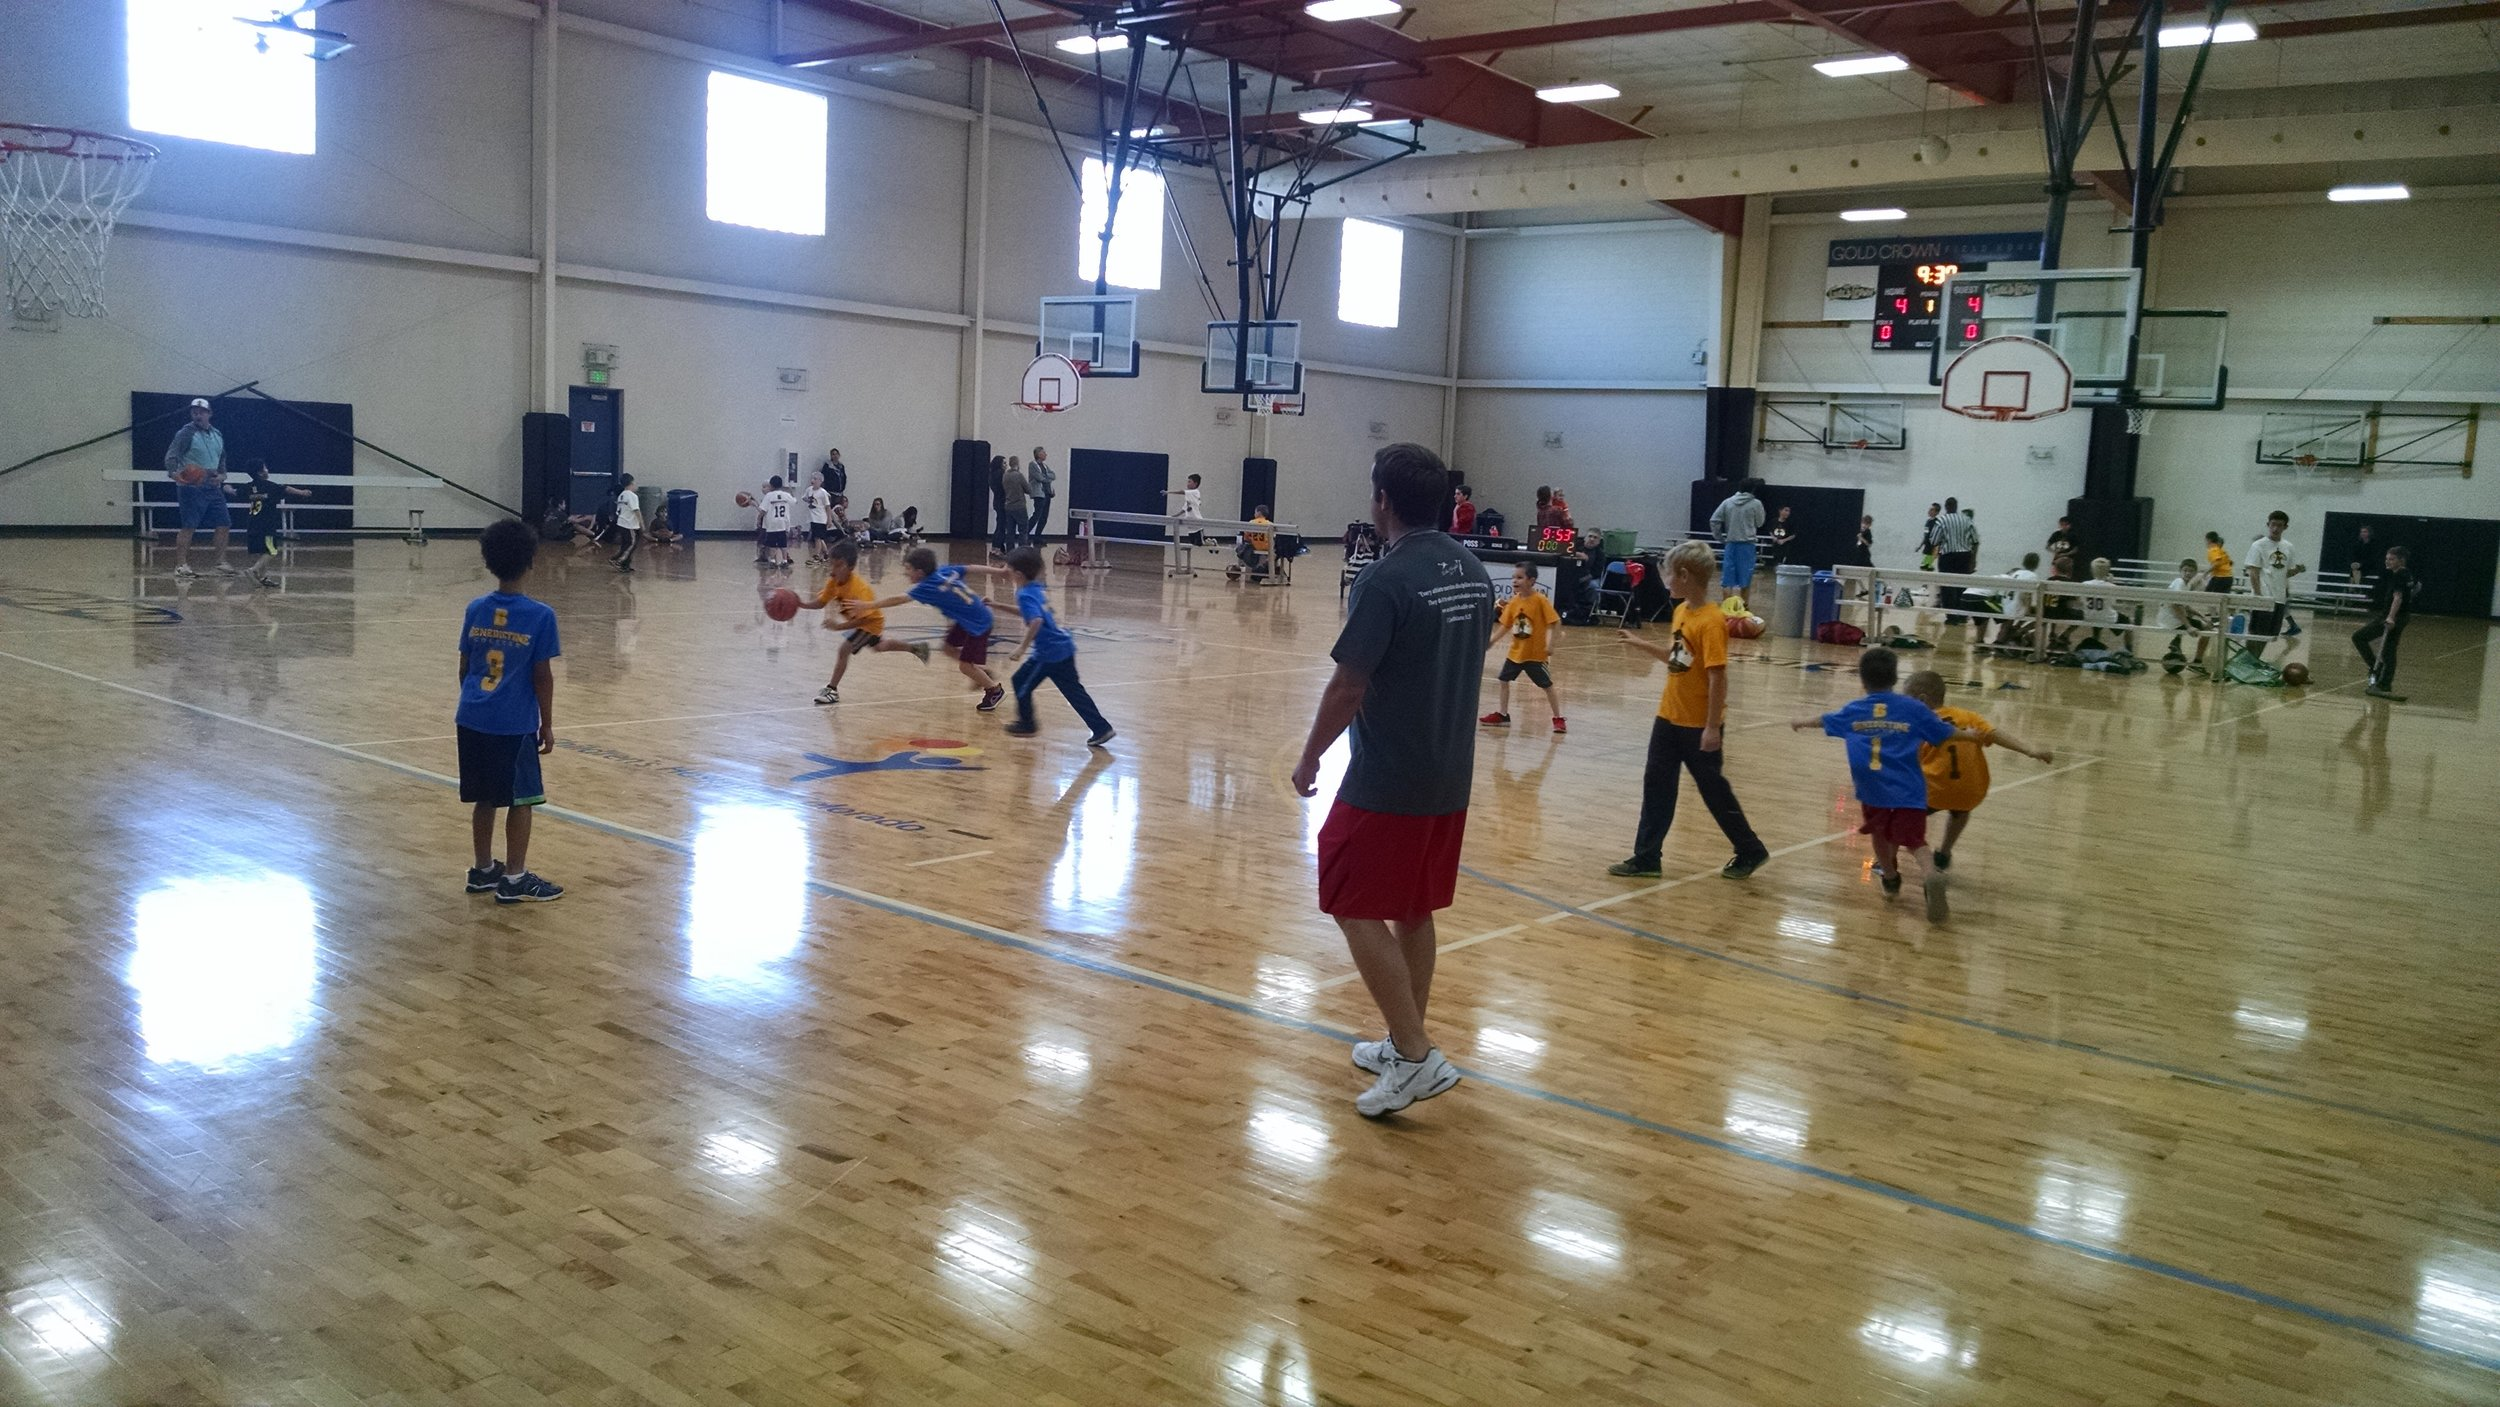 Homeschool Clinics - We offer a wide variety of homeschool clinics throughout the fall, winter, and spring. Scheduled weekly in the early afternoon for six weeks, these clinics take place at various locations. If interested in starting one near you, email coachmikita@frassatisports.org.